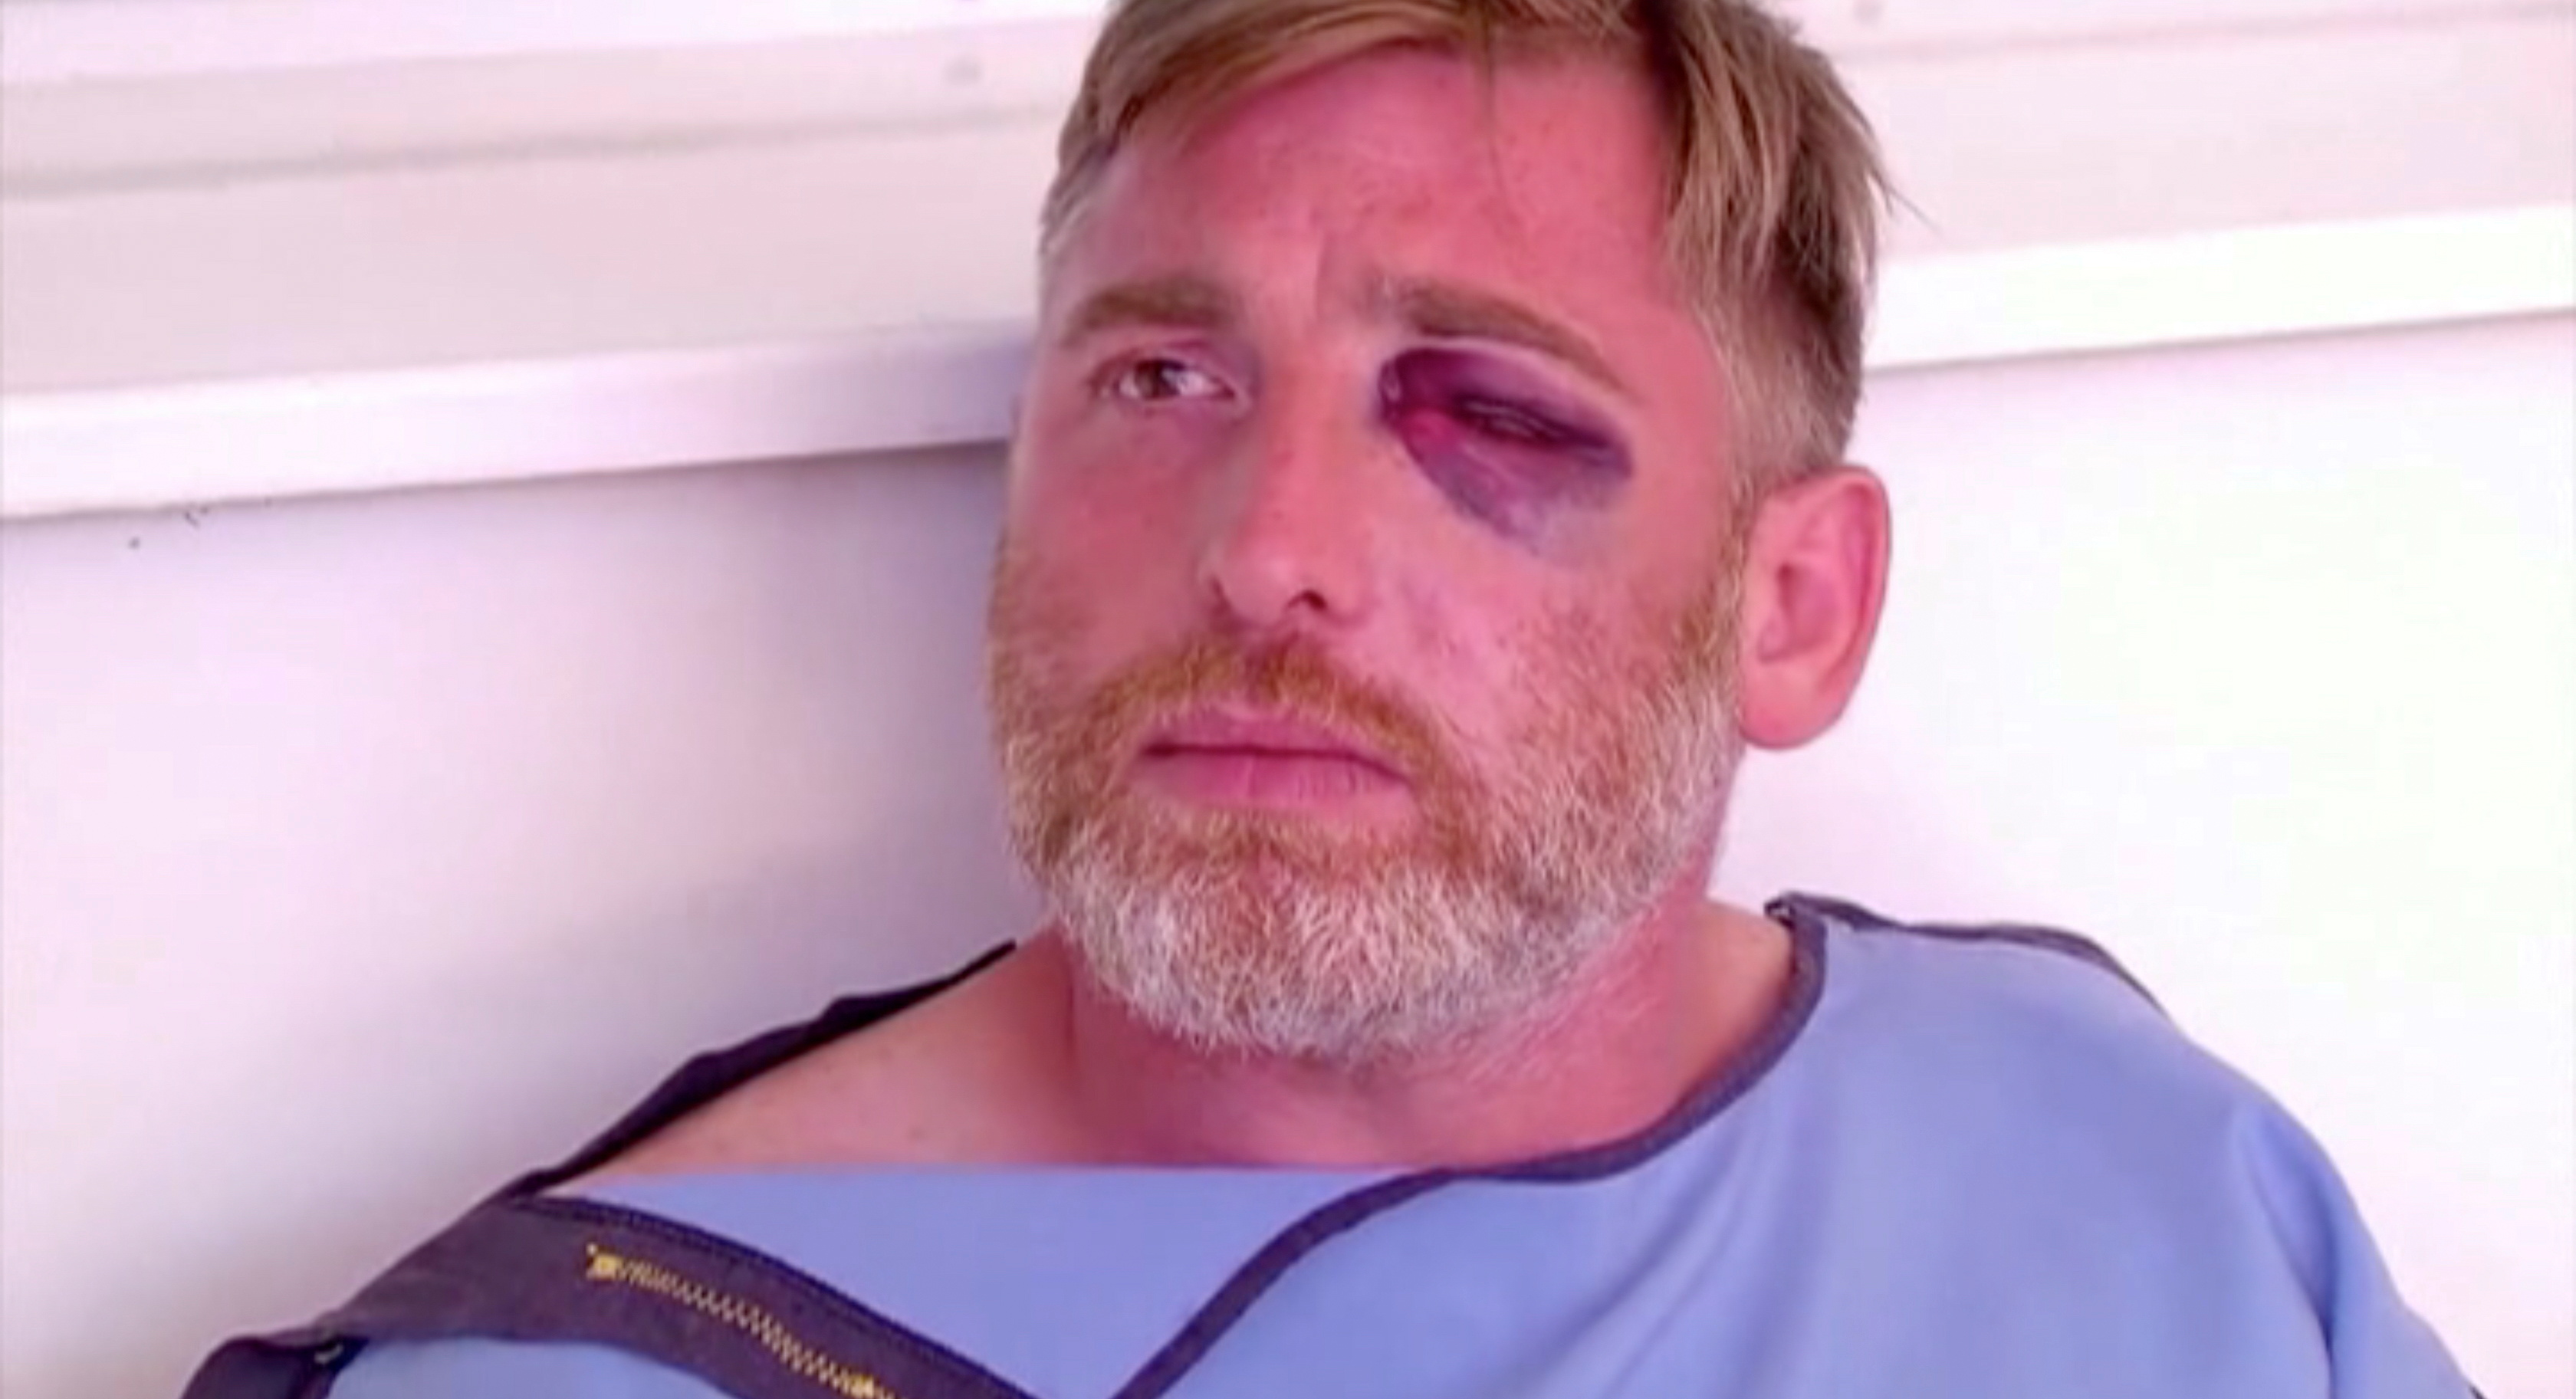 TV channel Pirveli cameraman Alexander Lashkarava is seen after being beaten when the violent group attacked LGBT+ activists and journalists last Monday, in Tbilisi, Georgia in this still image obtained from a video on July 11, 2021. TV PIRVELI/Handout via REUTERS